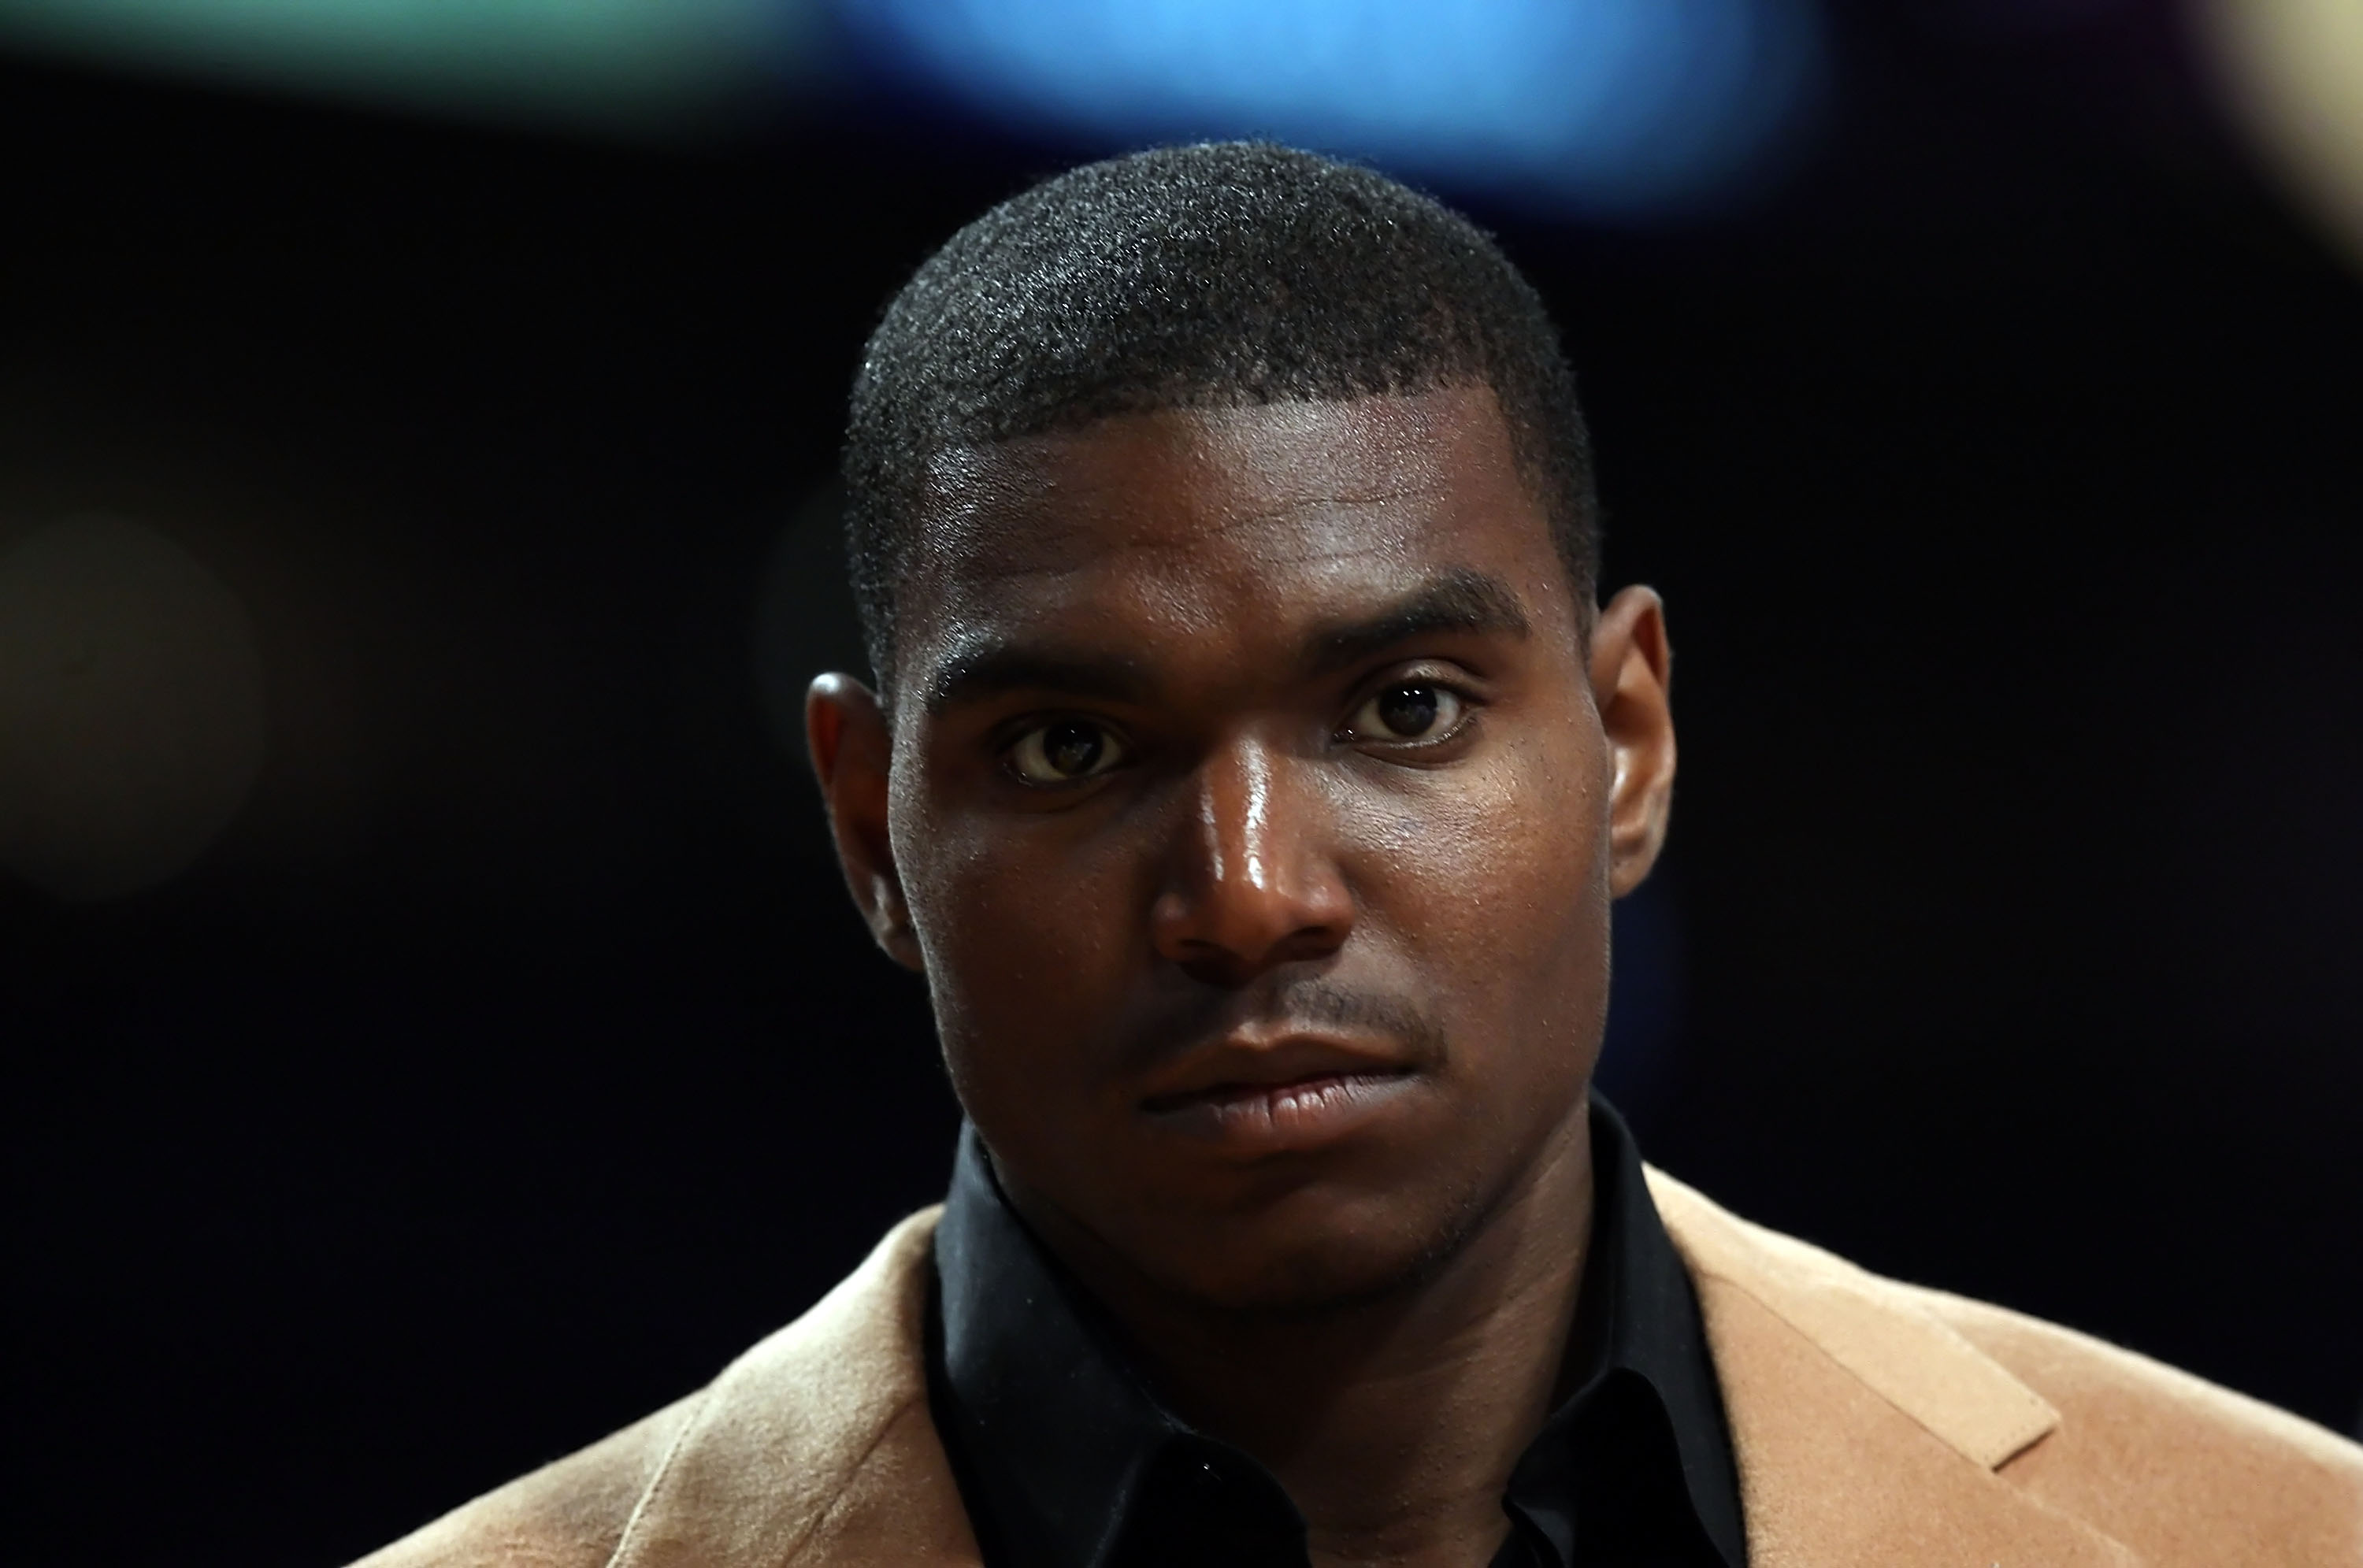 LOS ANGELES, CA - MAY 04:  Andrew Bynum #17 of the Los Angeles Lakers looks on from the bench as he is out for the game due to injury against the Utah Jazz in Game One of the Western Conference Semifinals during the 2008 NBA Playoffs at Staples Center on